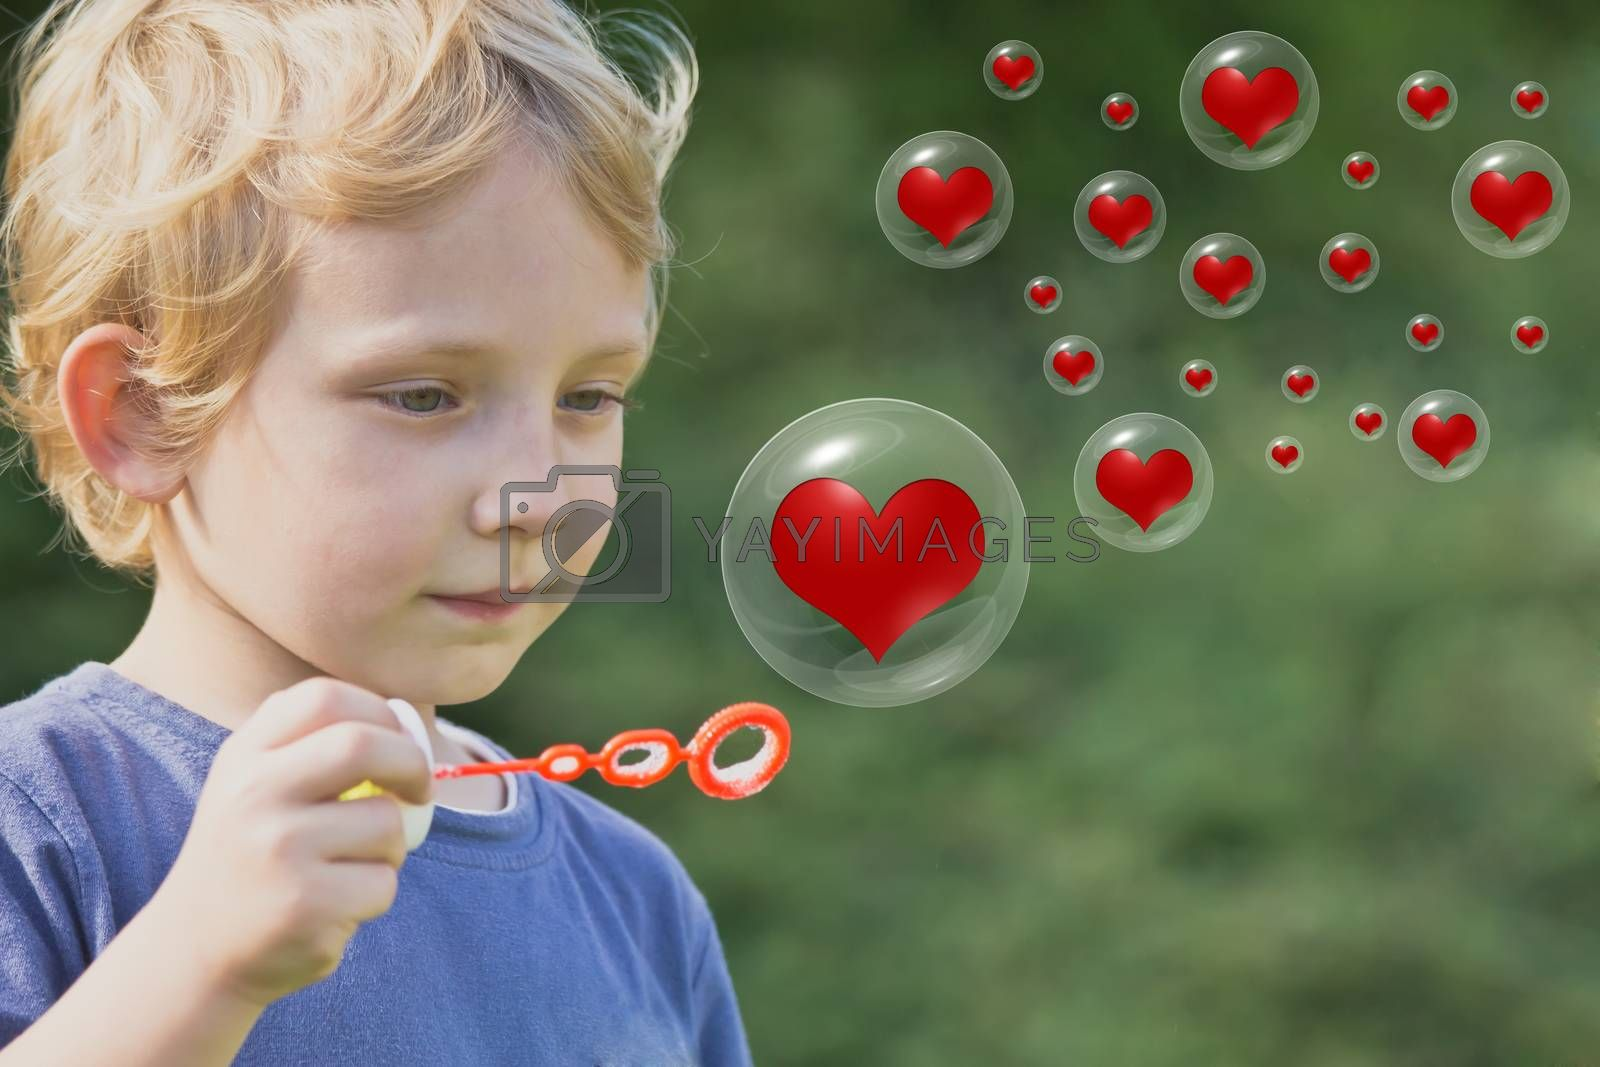 The blond boy is playing with soap bubbles, in which are red hearts